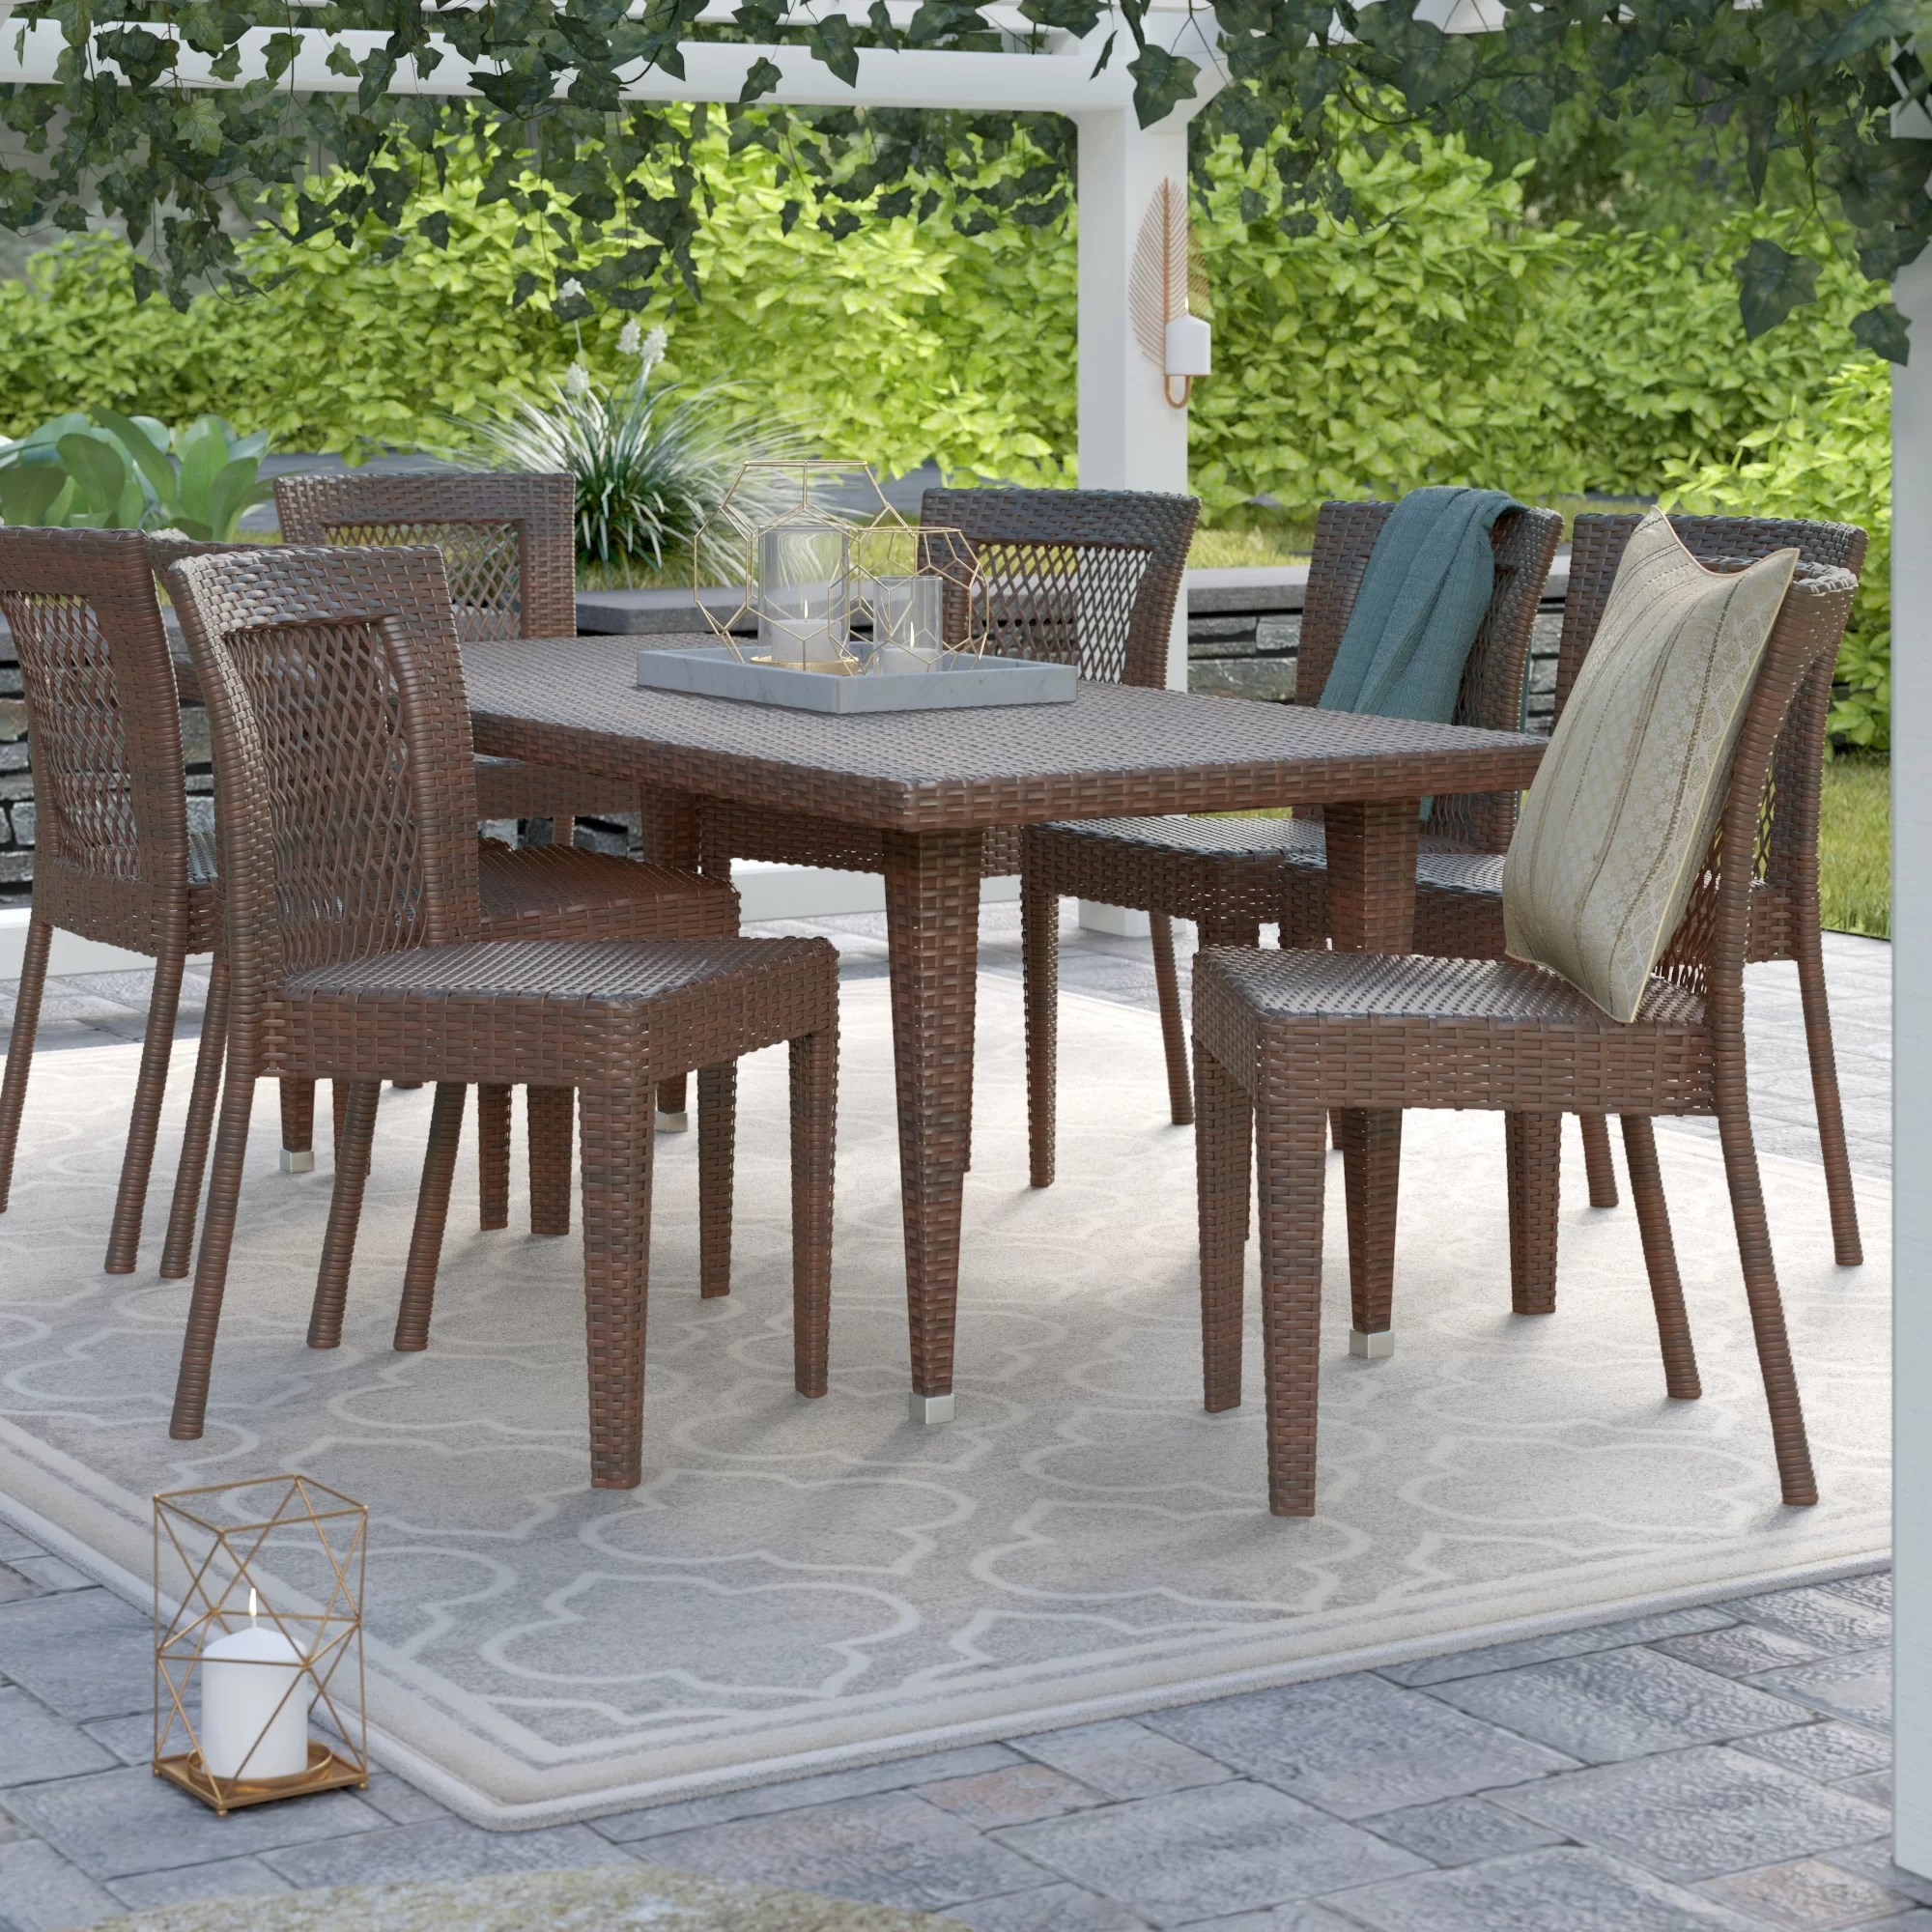 9 Piece Outdoor Dining Set Diaz 9 Piece Dining Set